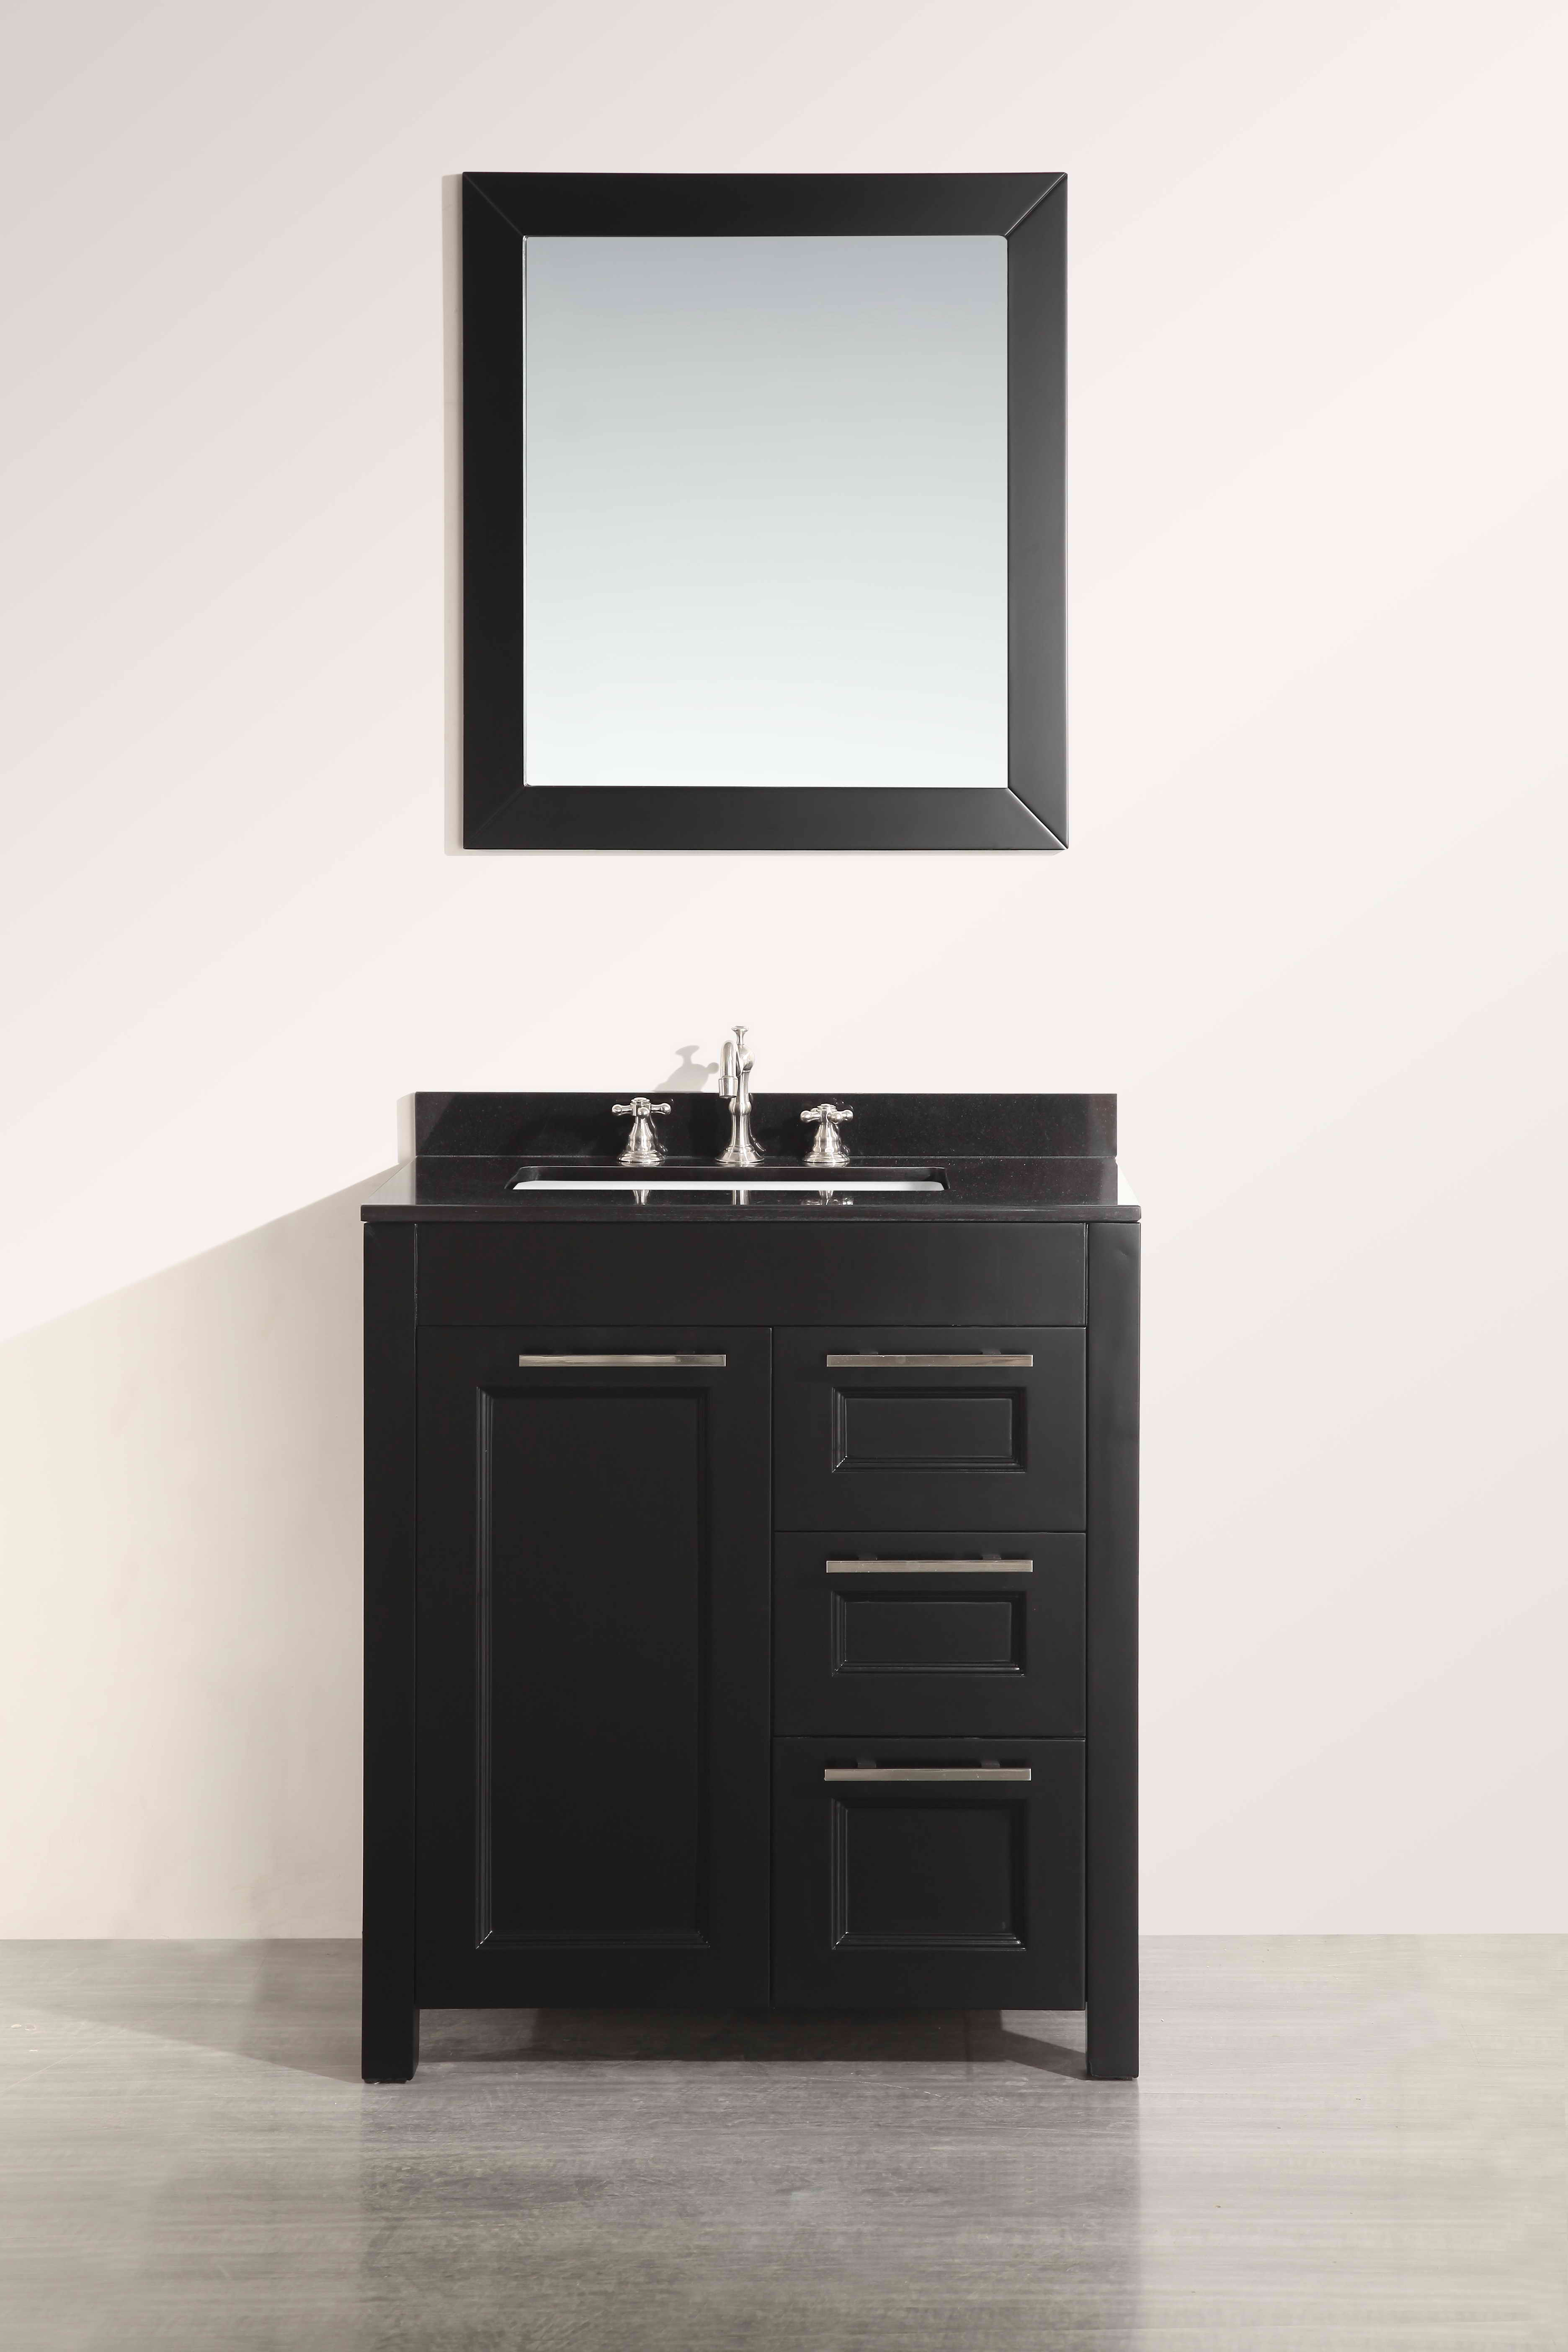 Bosconi SB-267-1BBG 30 Inch Single Vanity in Black Finish